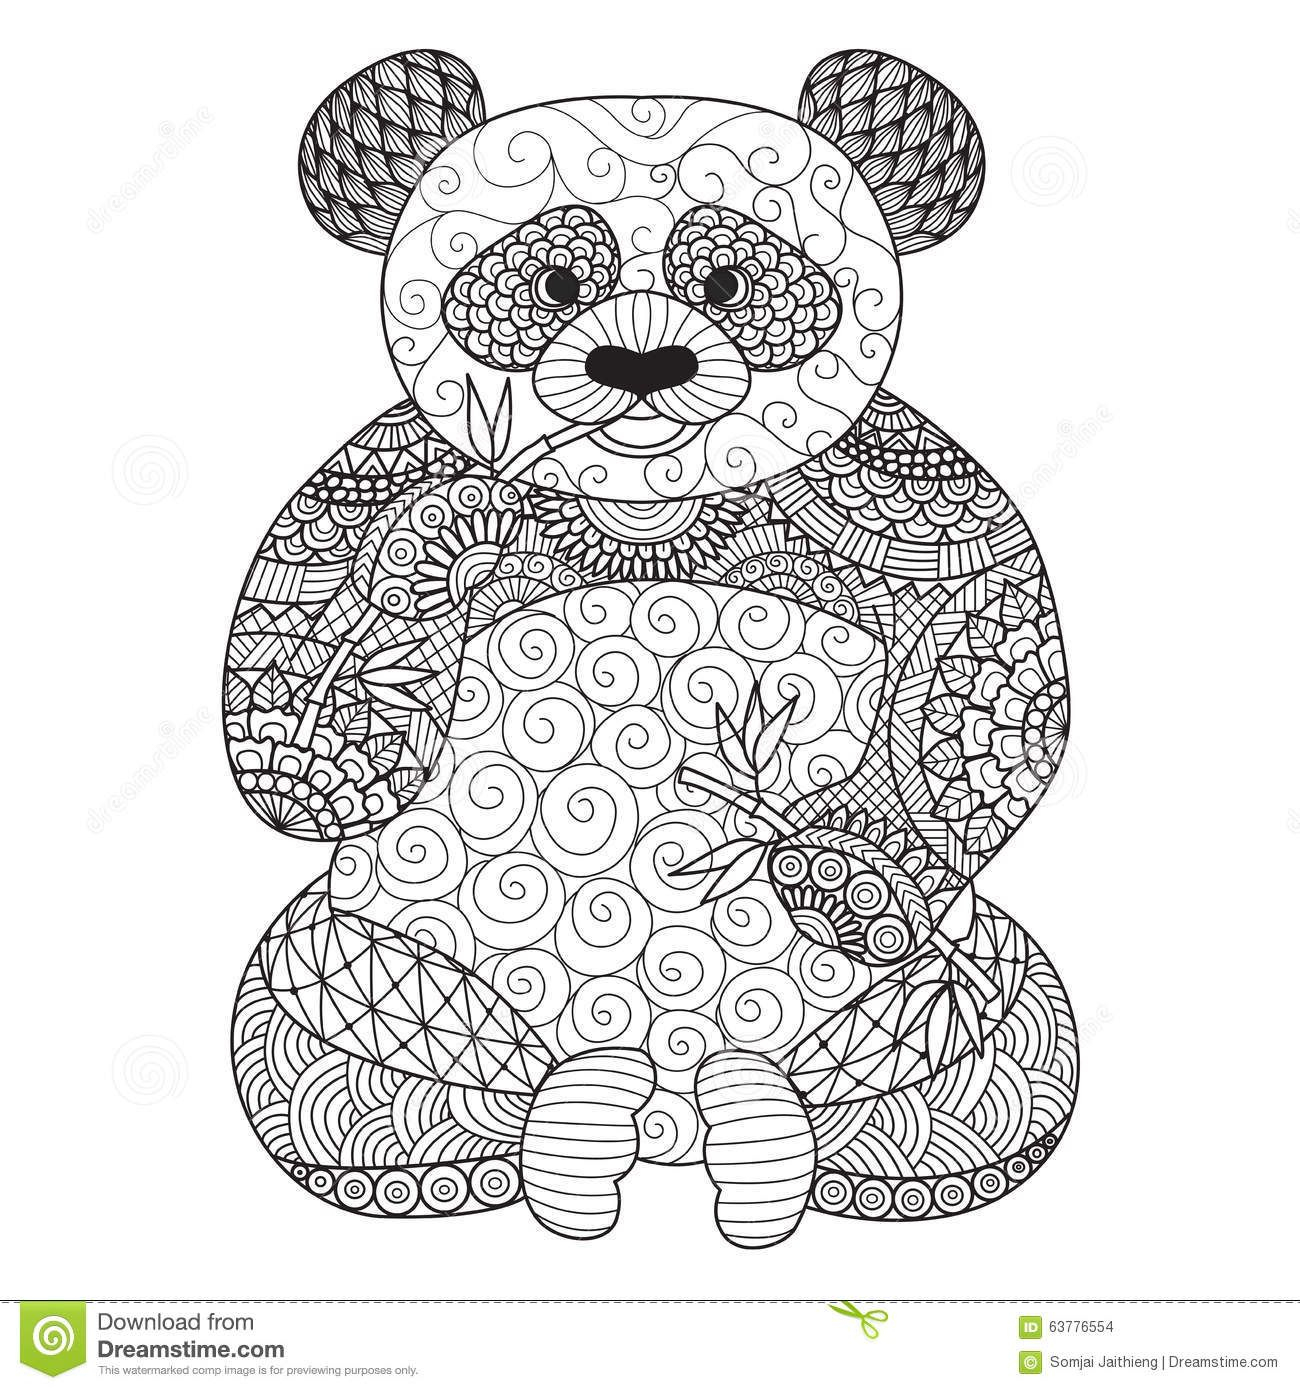 Dreamcatcher Coloring Pages - Google Search | Livre De dedans Panda A Colorier